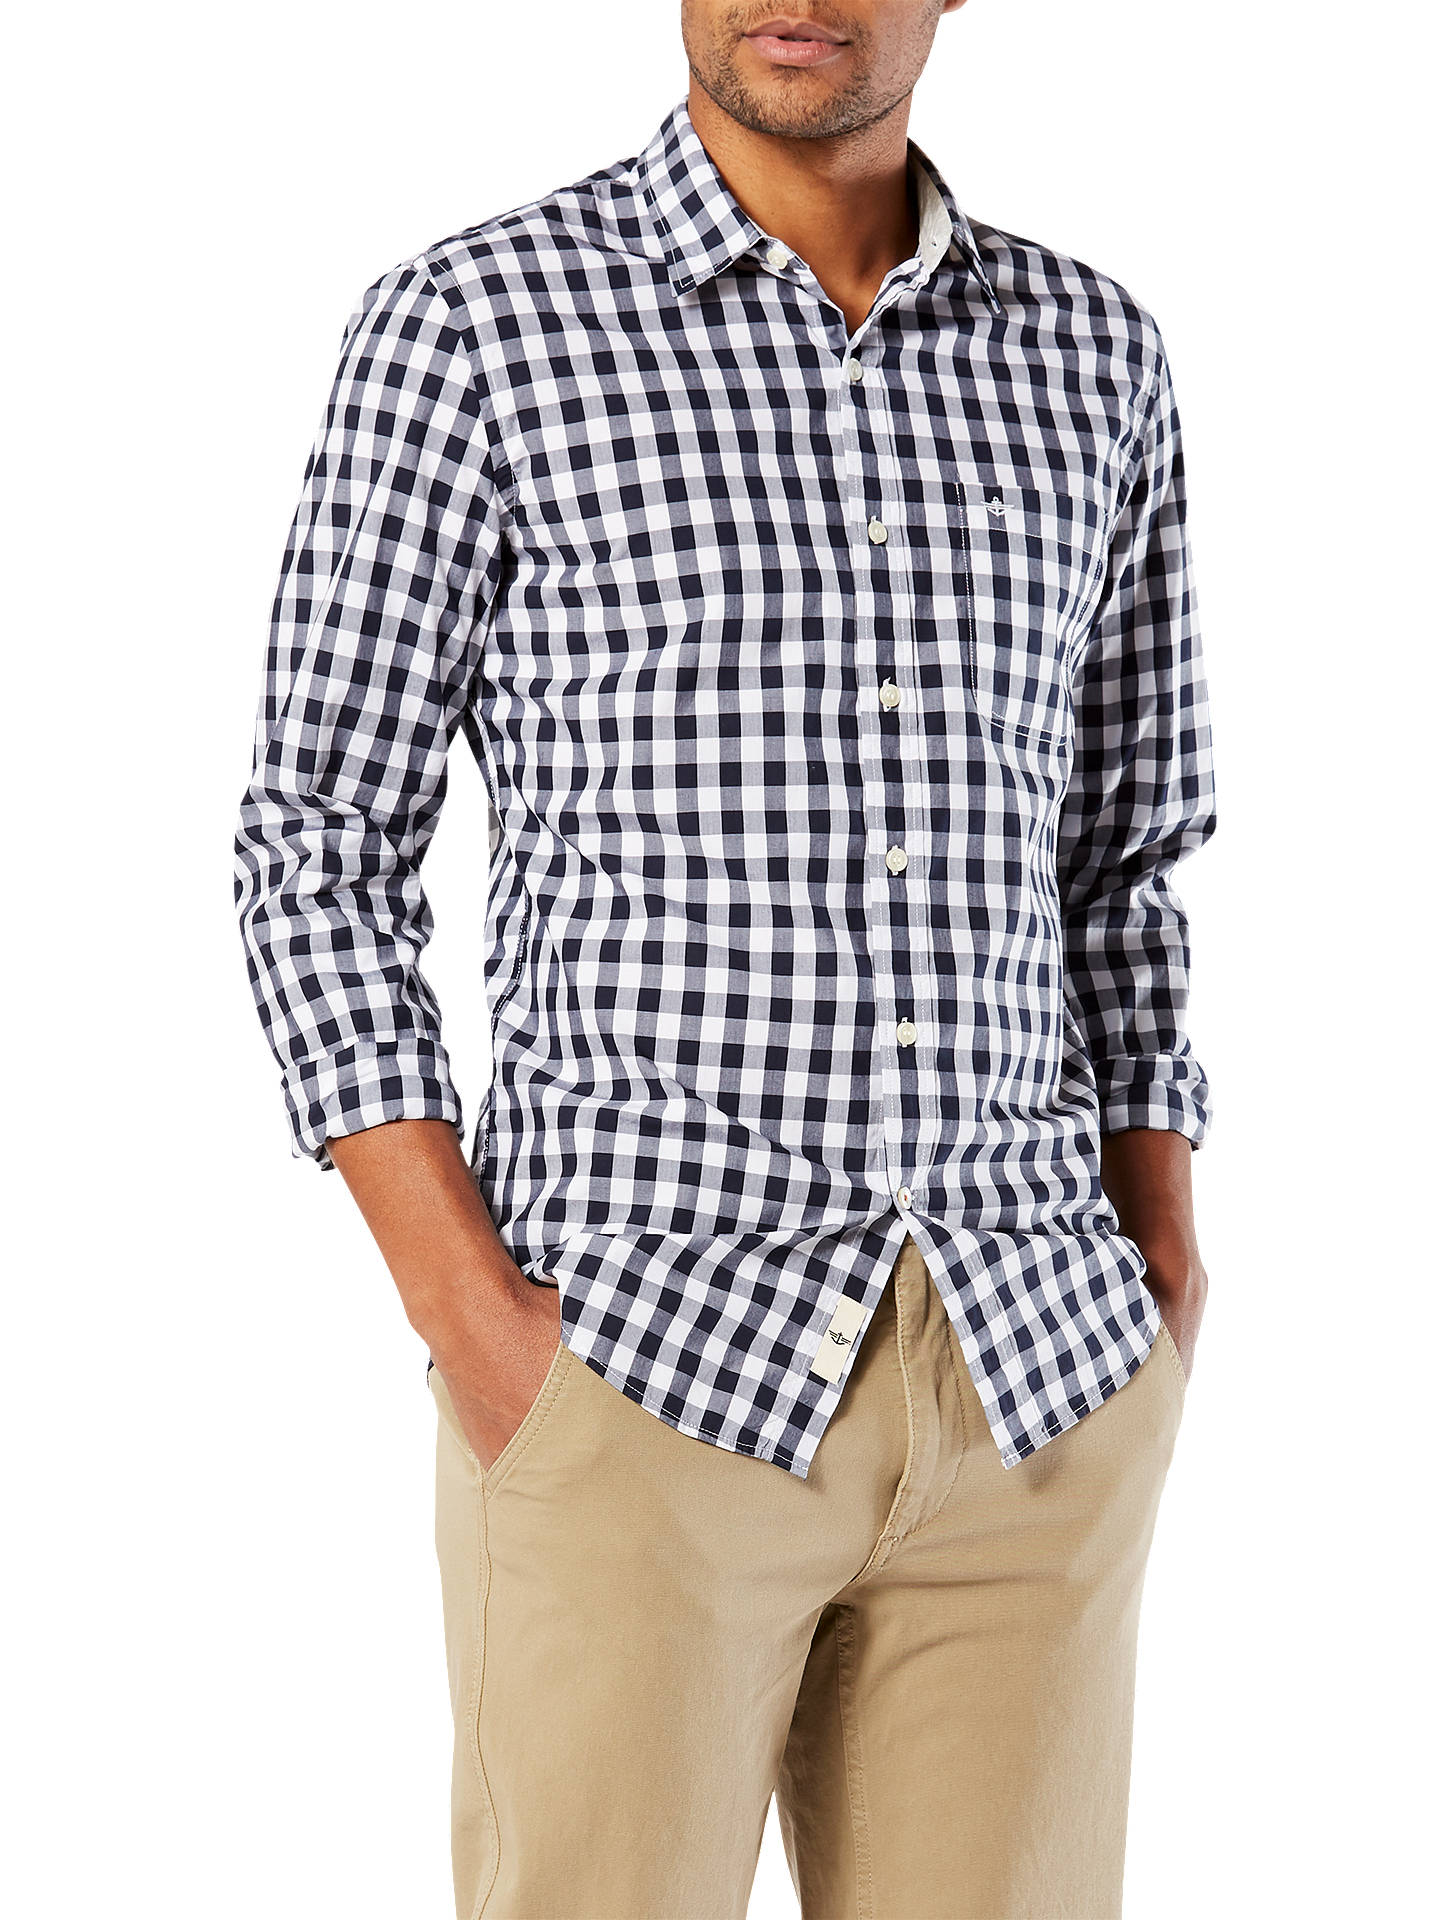 BuyDockers Alpha Laundered Poplin Shirt, Pembroke Helm, S Online at johnlewis.com